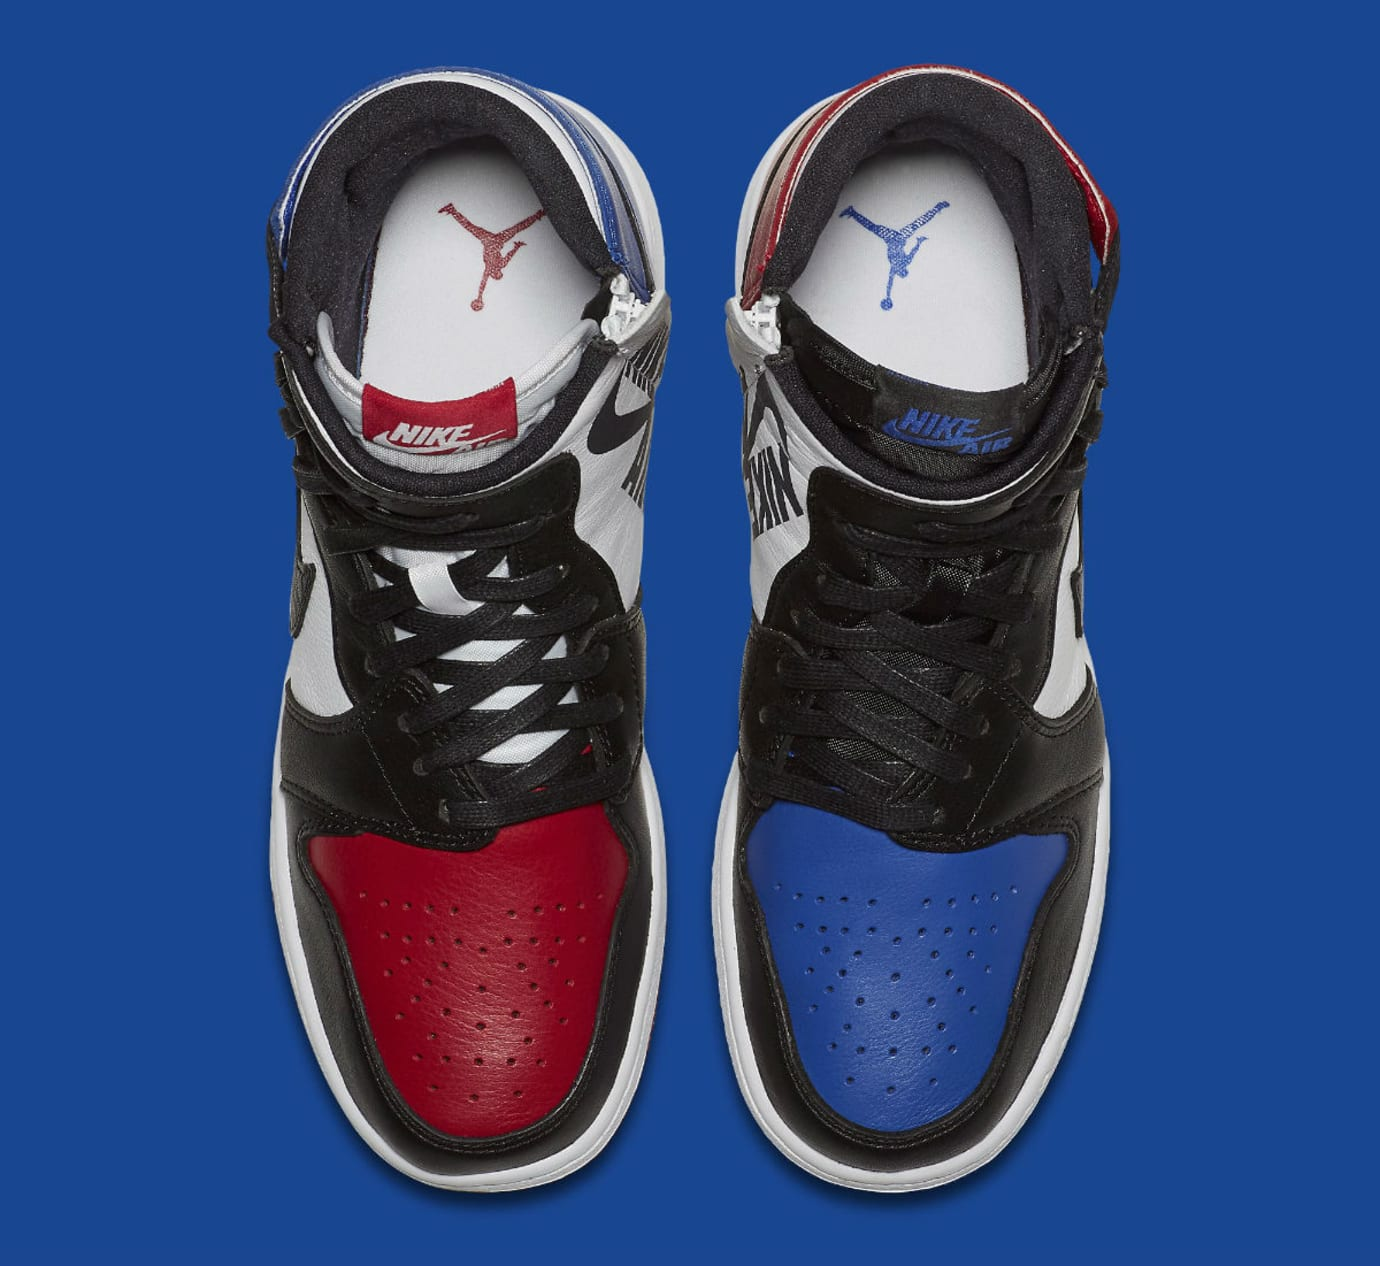 Air Jordan 1 Rebel XX Top 3 Release Date AT4151-001 Top